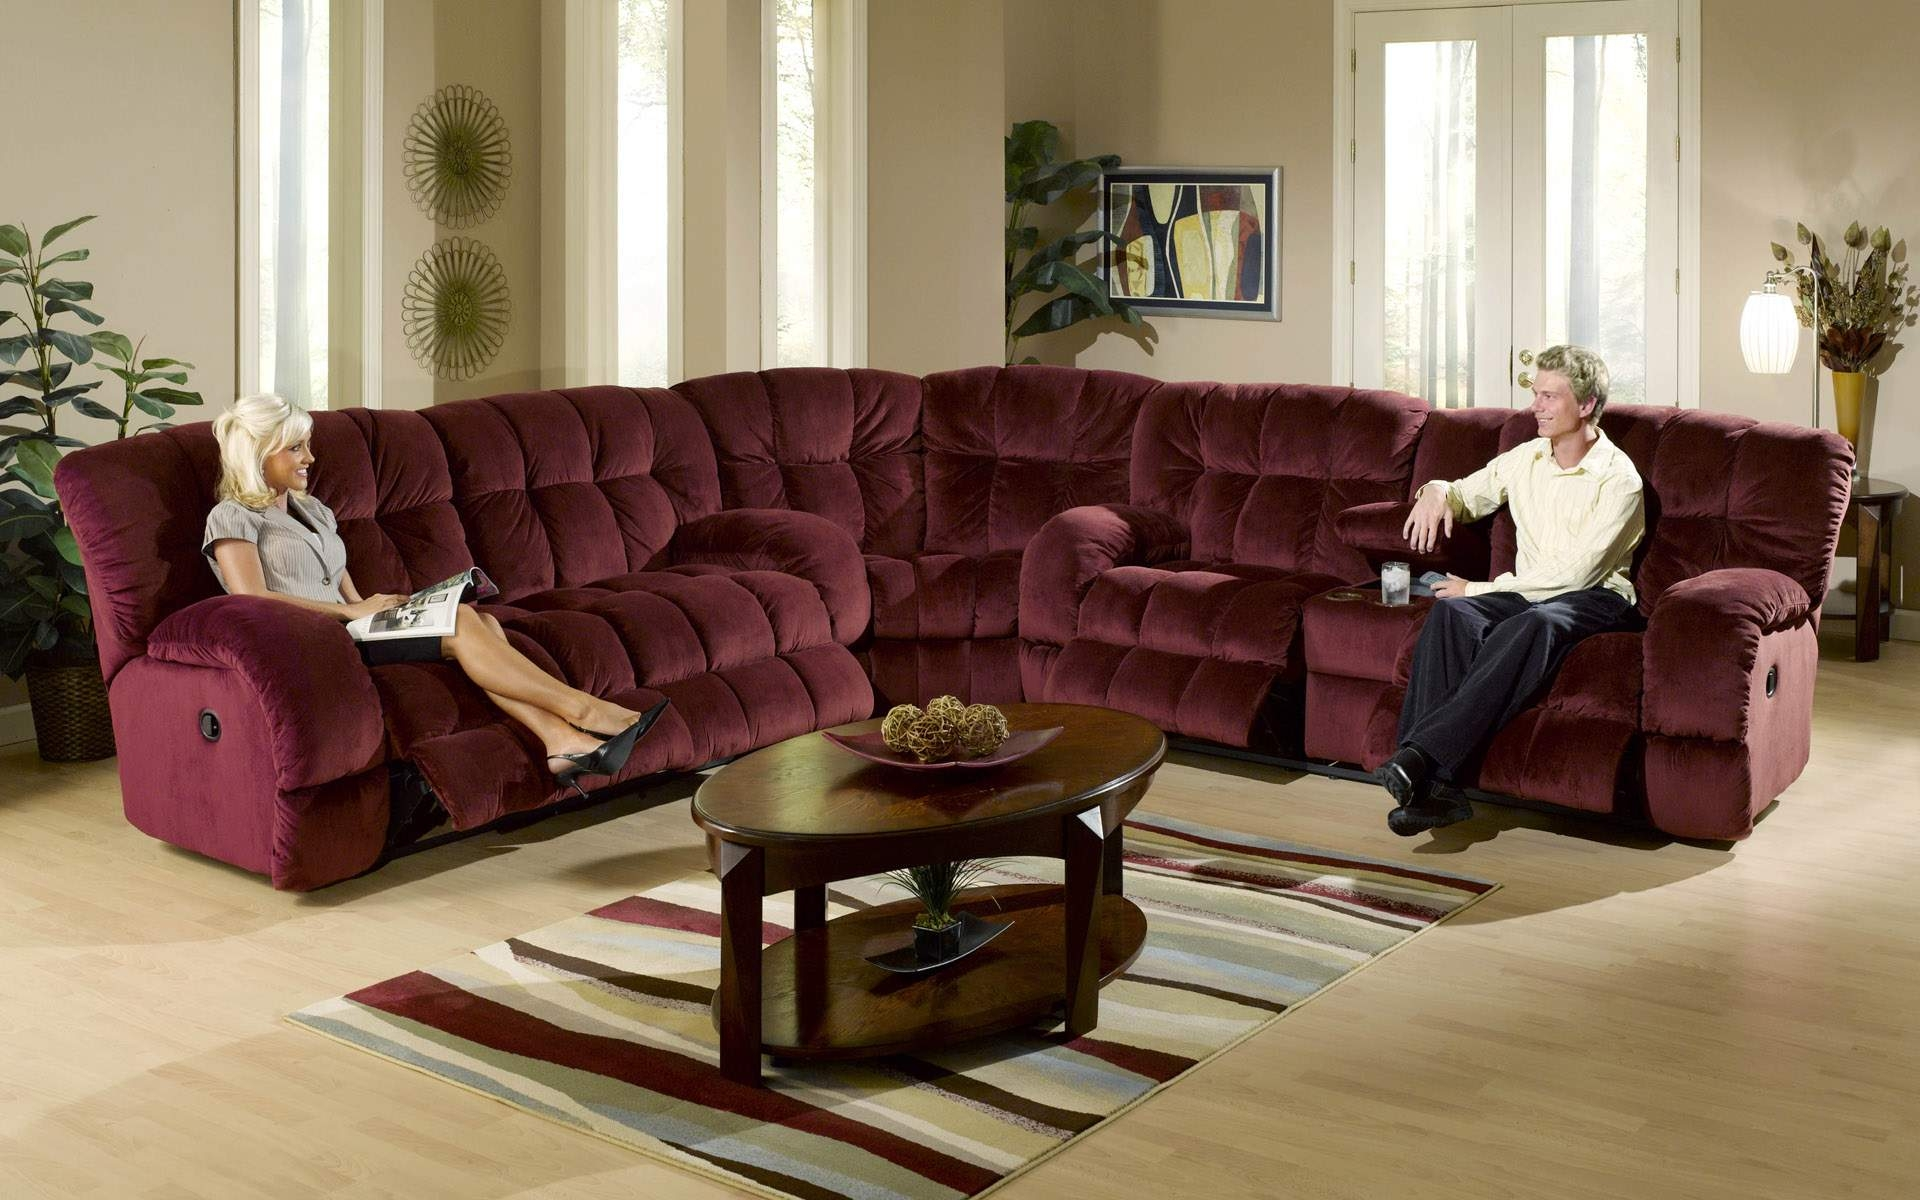 Good Quality Sectional Sofas Cleanupflorida Regarding Quality Sectional Sofa (#5 of 12)